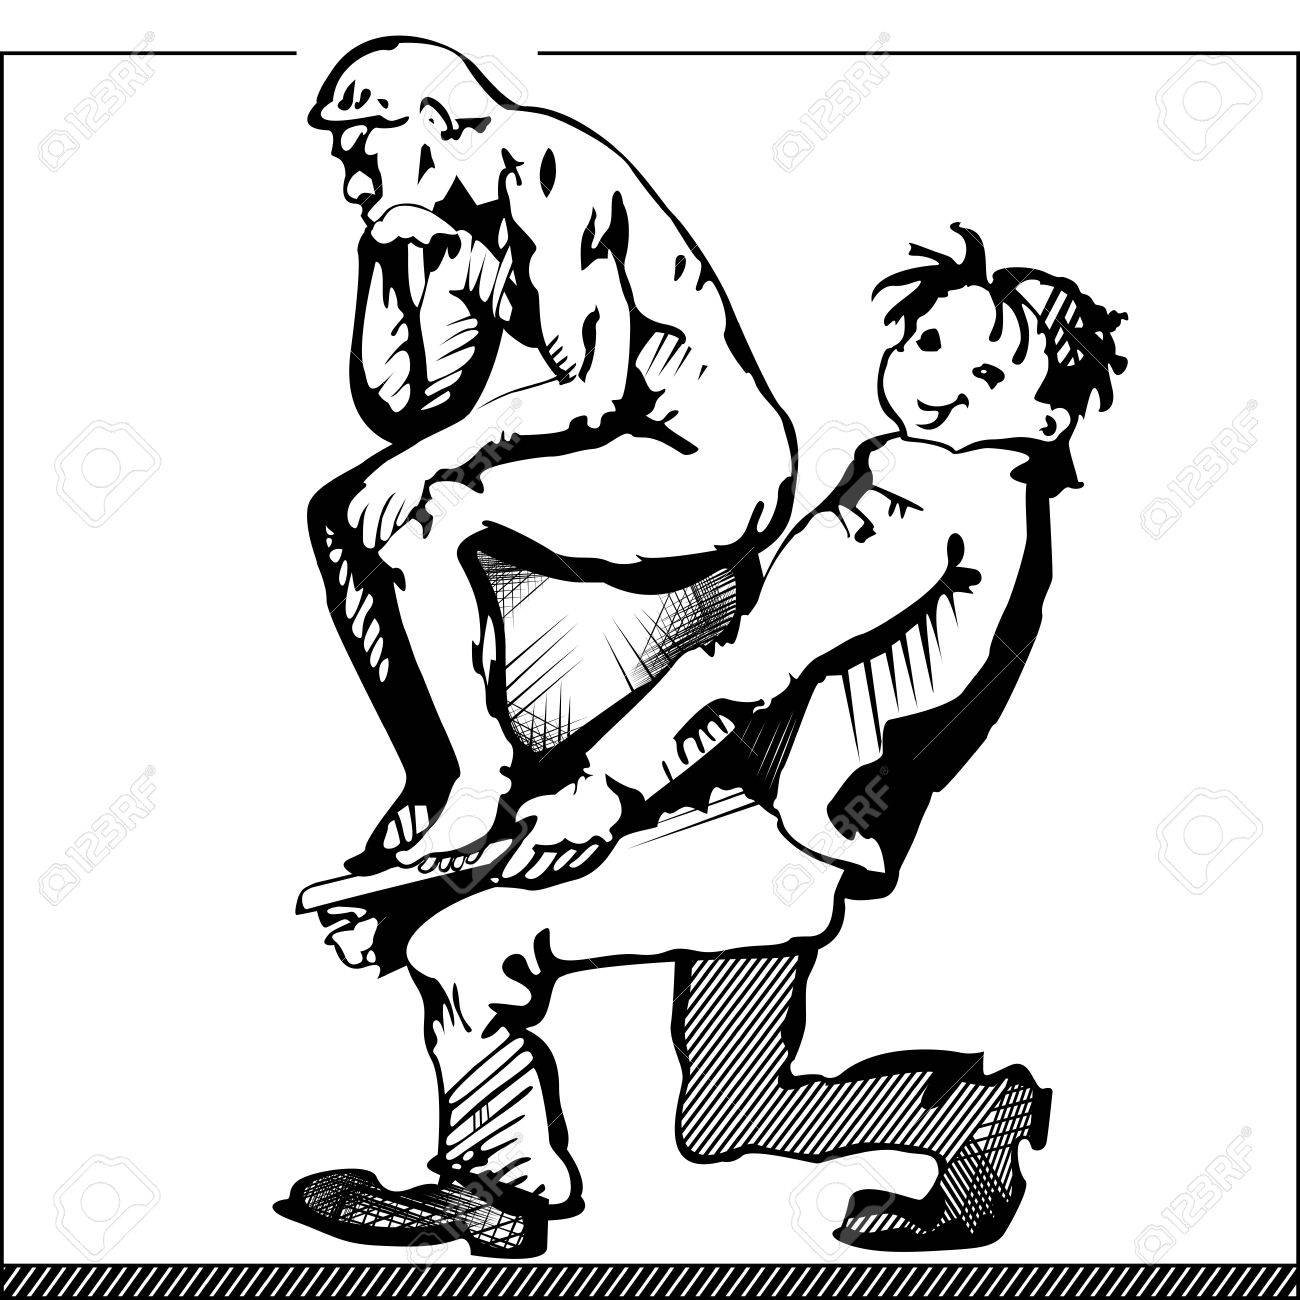 1300x1300 Cartoon Image Of A Man Carrying A Sculpture Of Rodin's Thinker